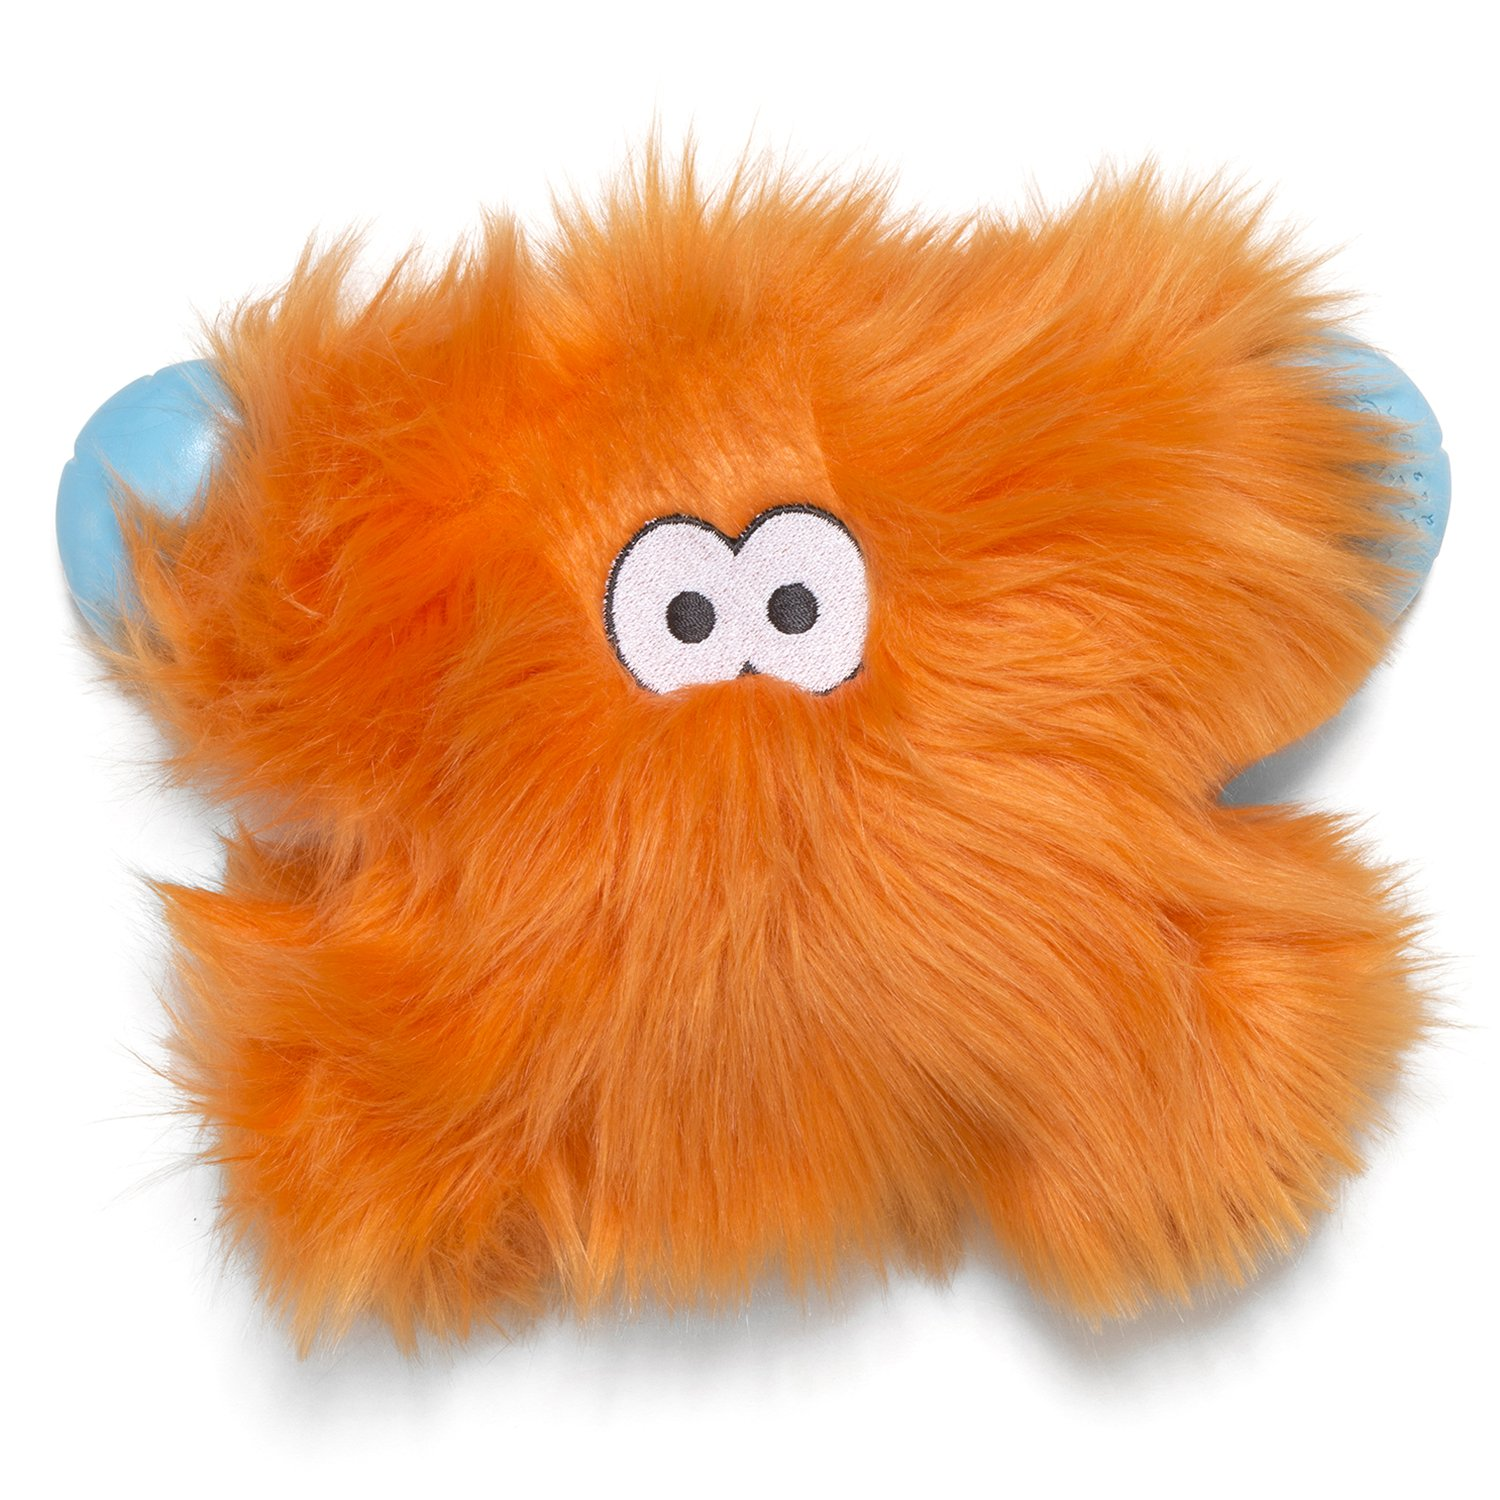 West Paw Rowdies with HardyTex and Zogoflex, Durable Plush Dog Toy for Small Dogs, Fergus, Orange Fur